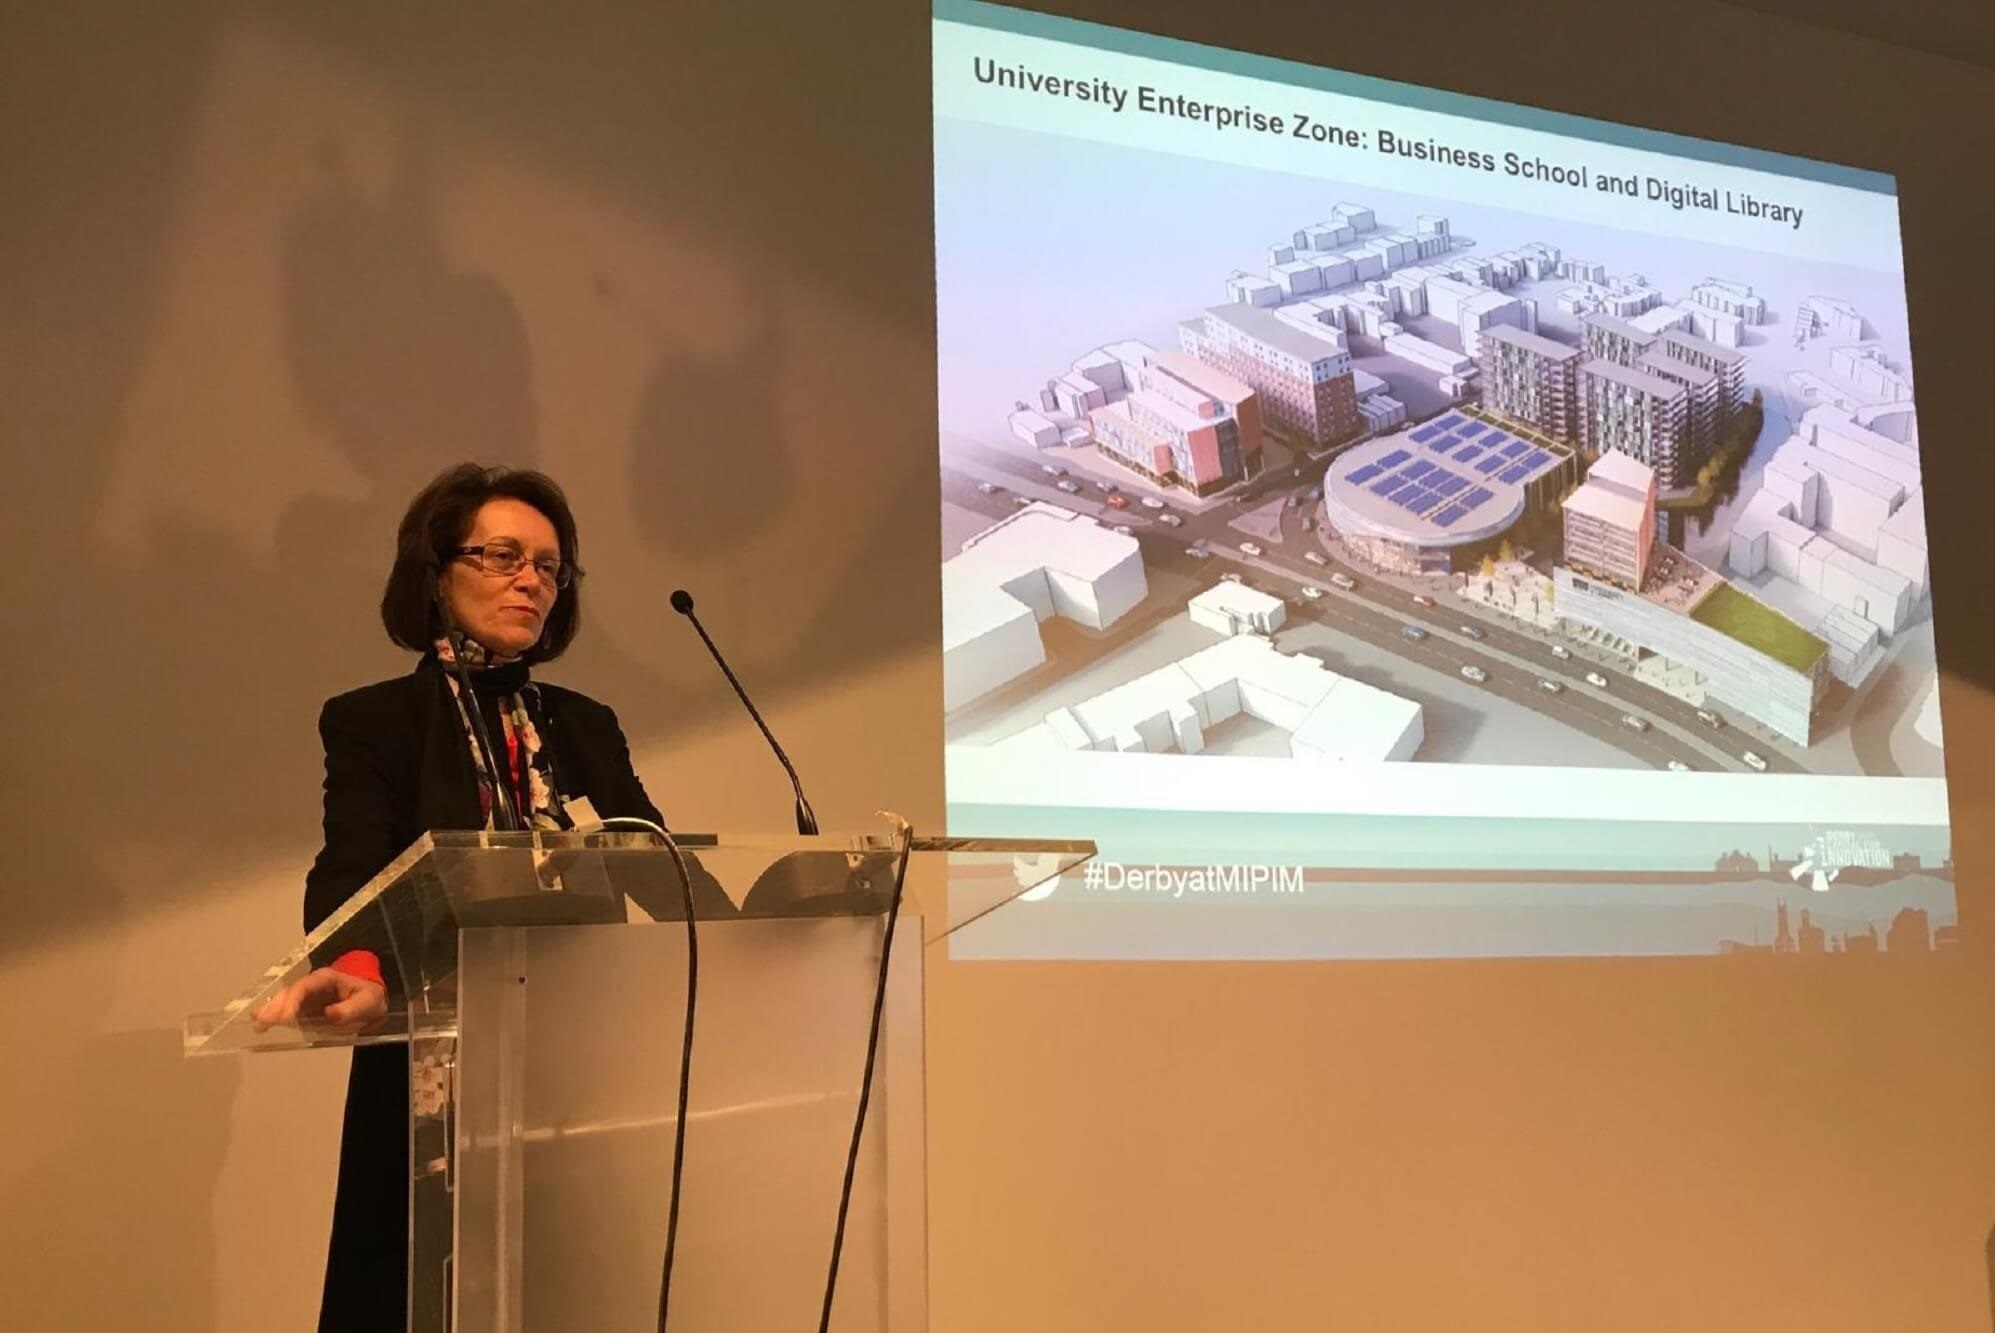 Professor Judith Lamie gives a presentation to the MIPIM business property event